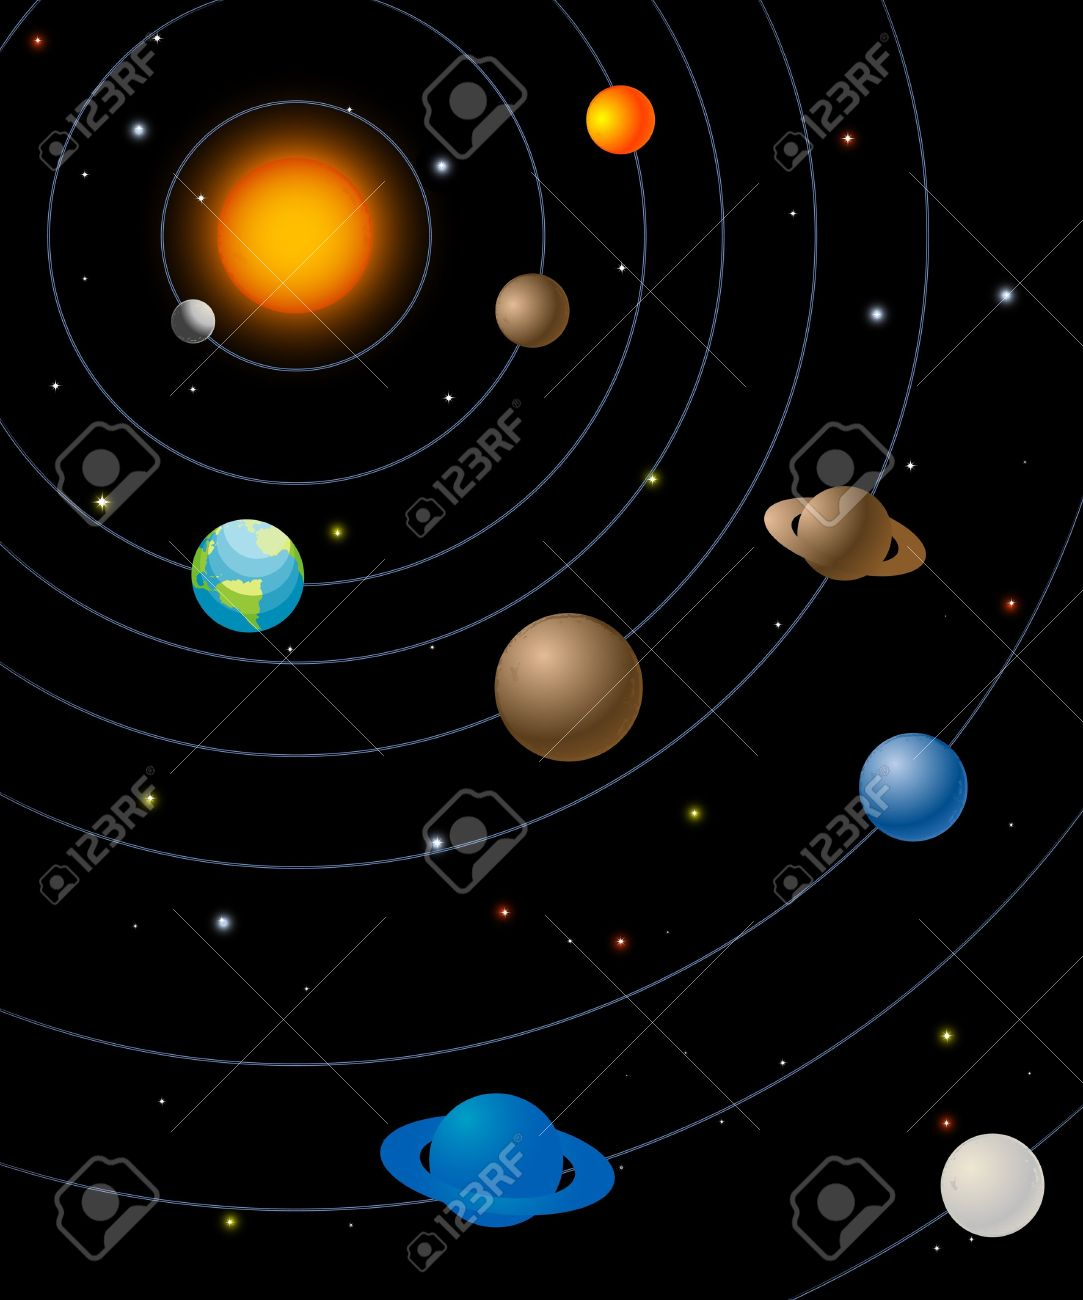 Clipart Of Universe.